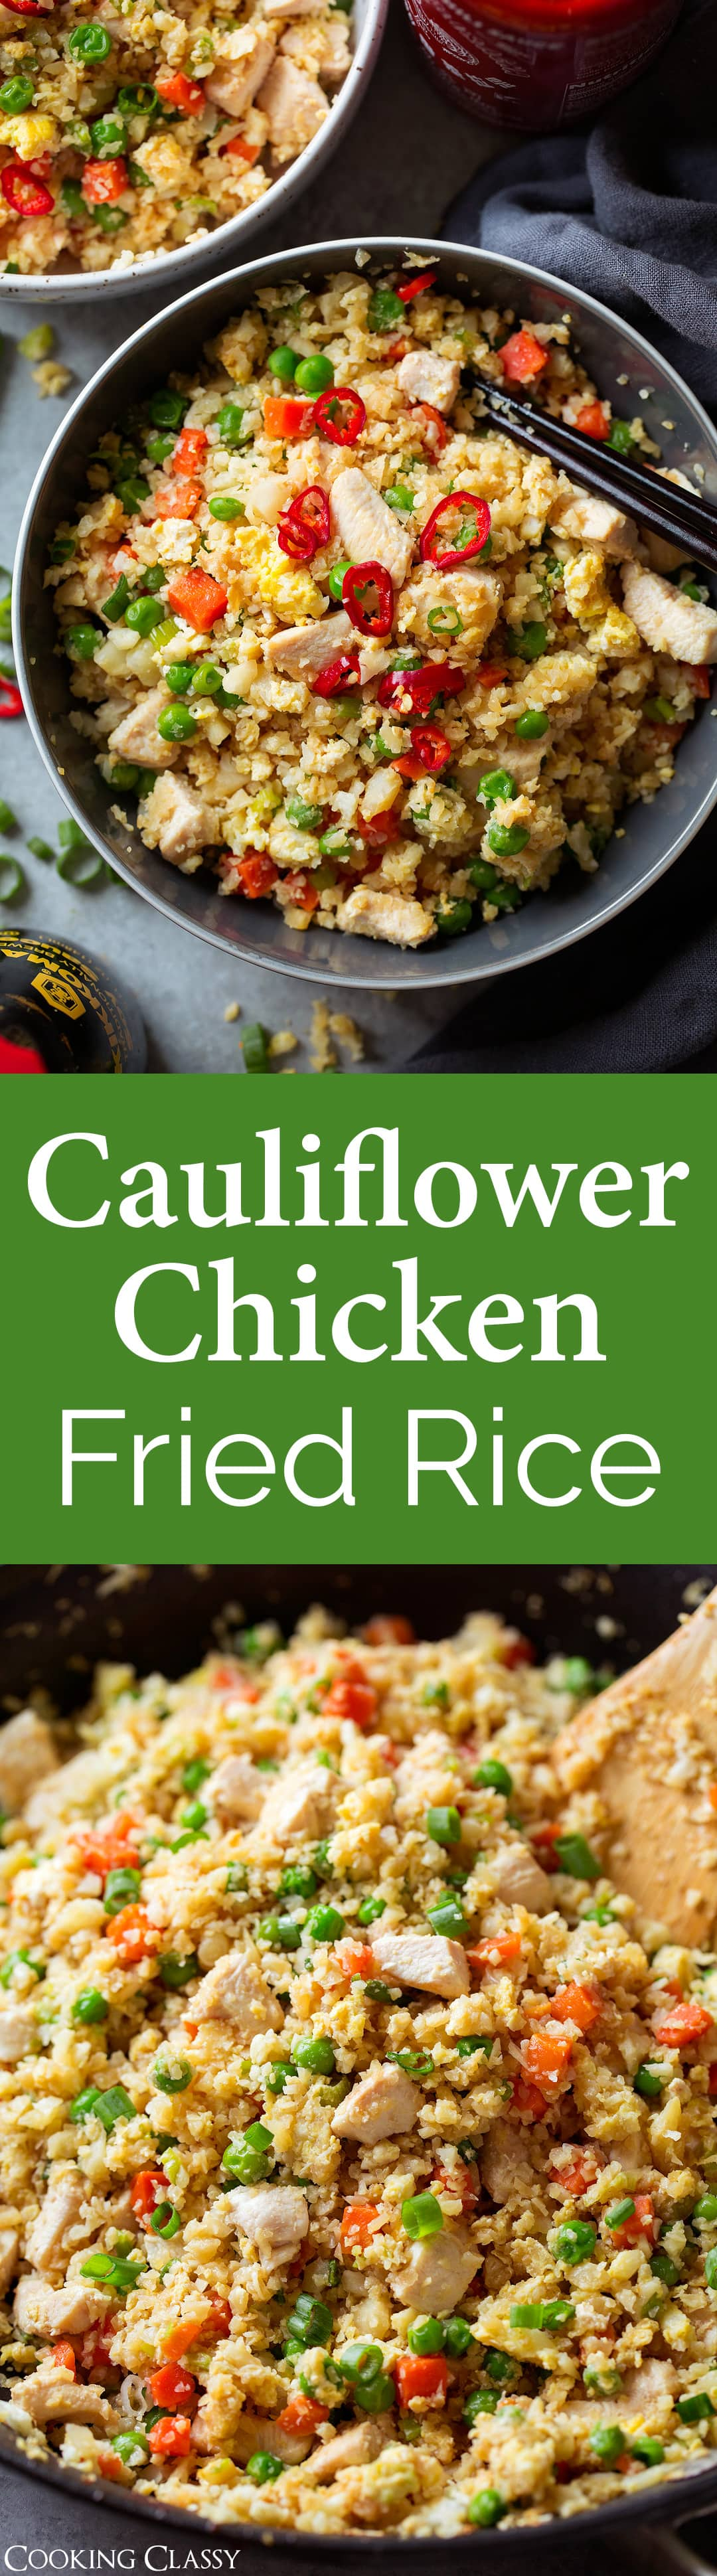 Cauliflower Chicken Fried Rice - This easy fried rice is jam packed with veggies and protein. It's seriously hearty and so delicious! A healthy one pan meal to start the new year with. #newyear #healthy #recipe #friedrice #cauliflowerrice